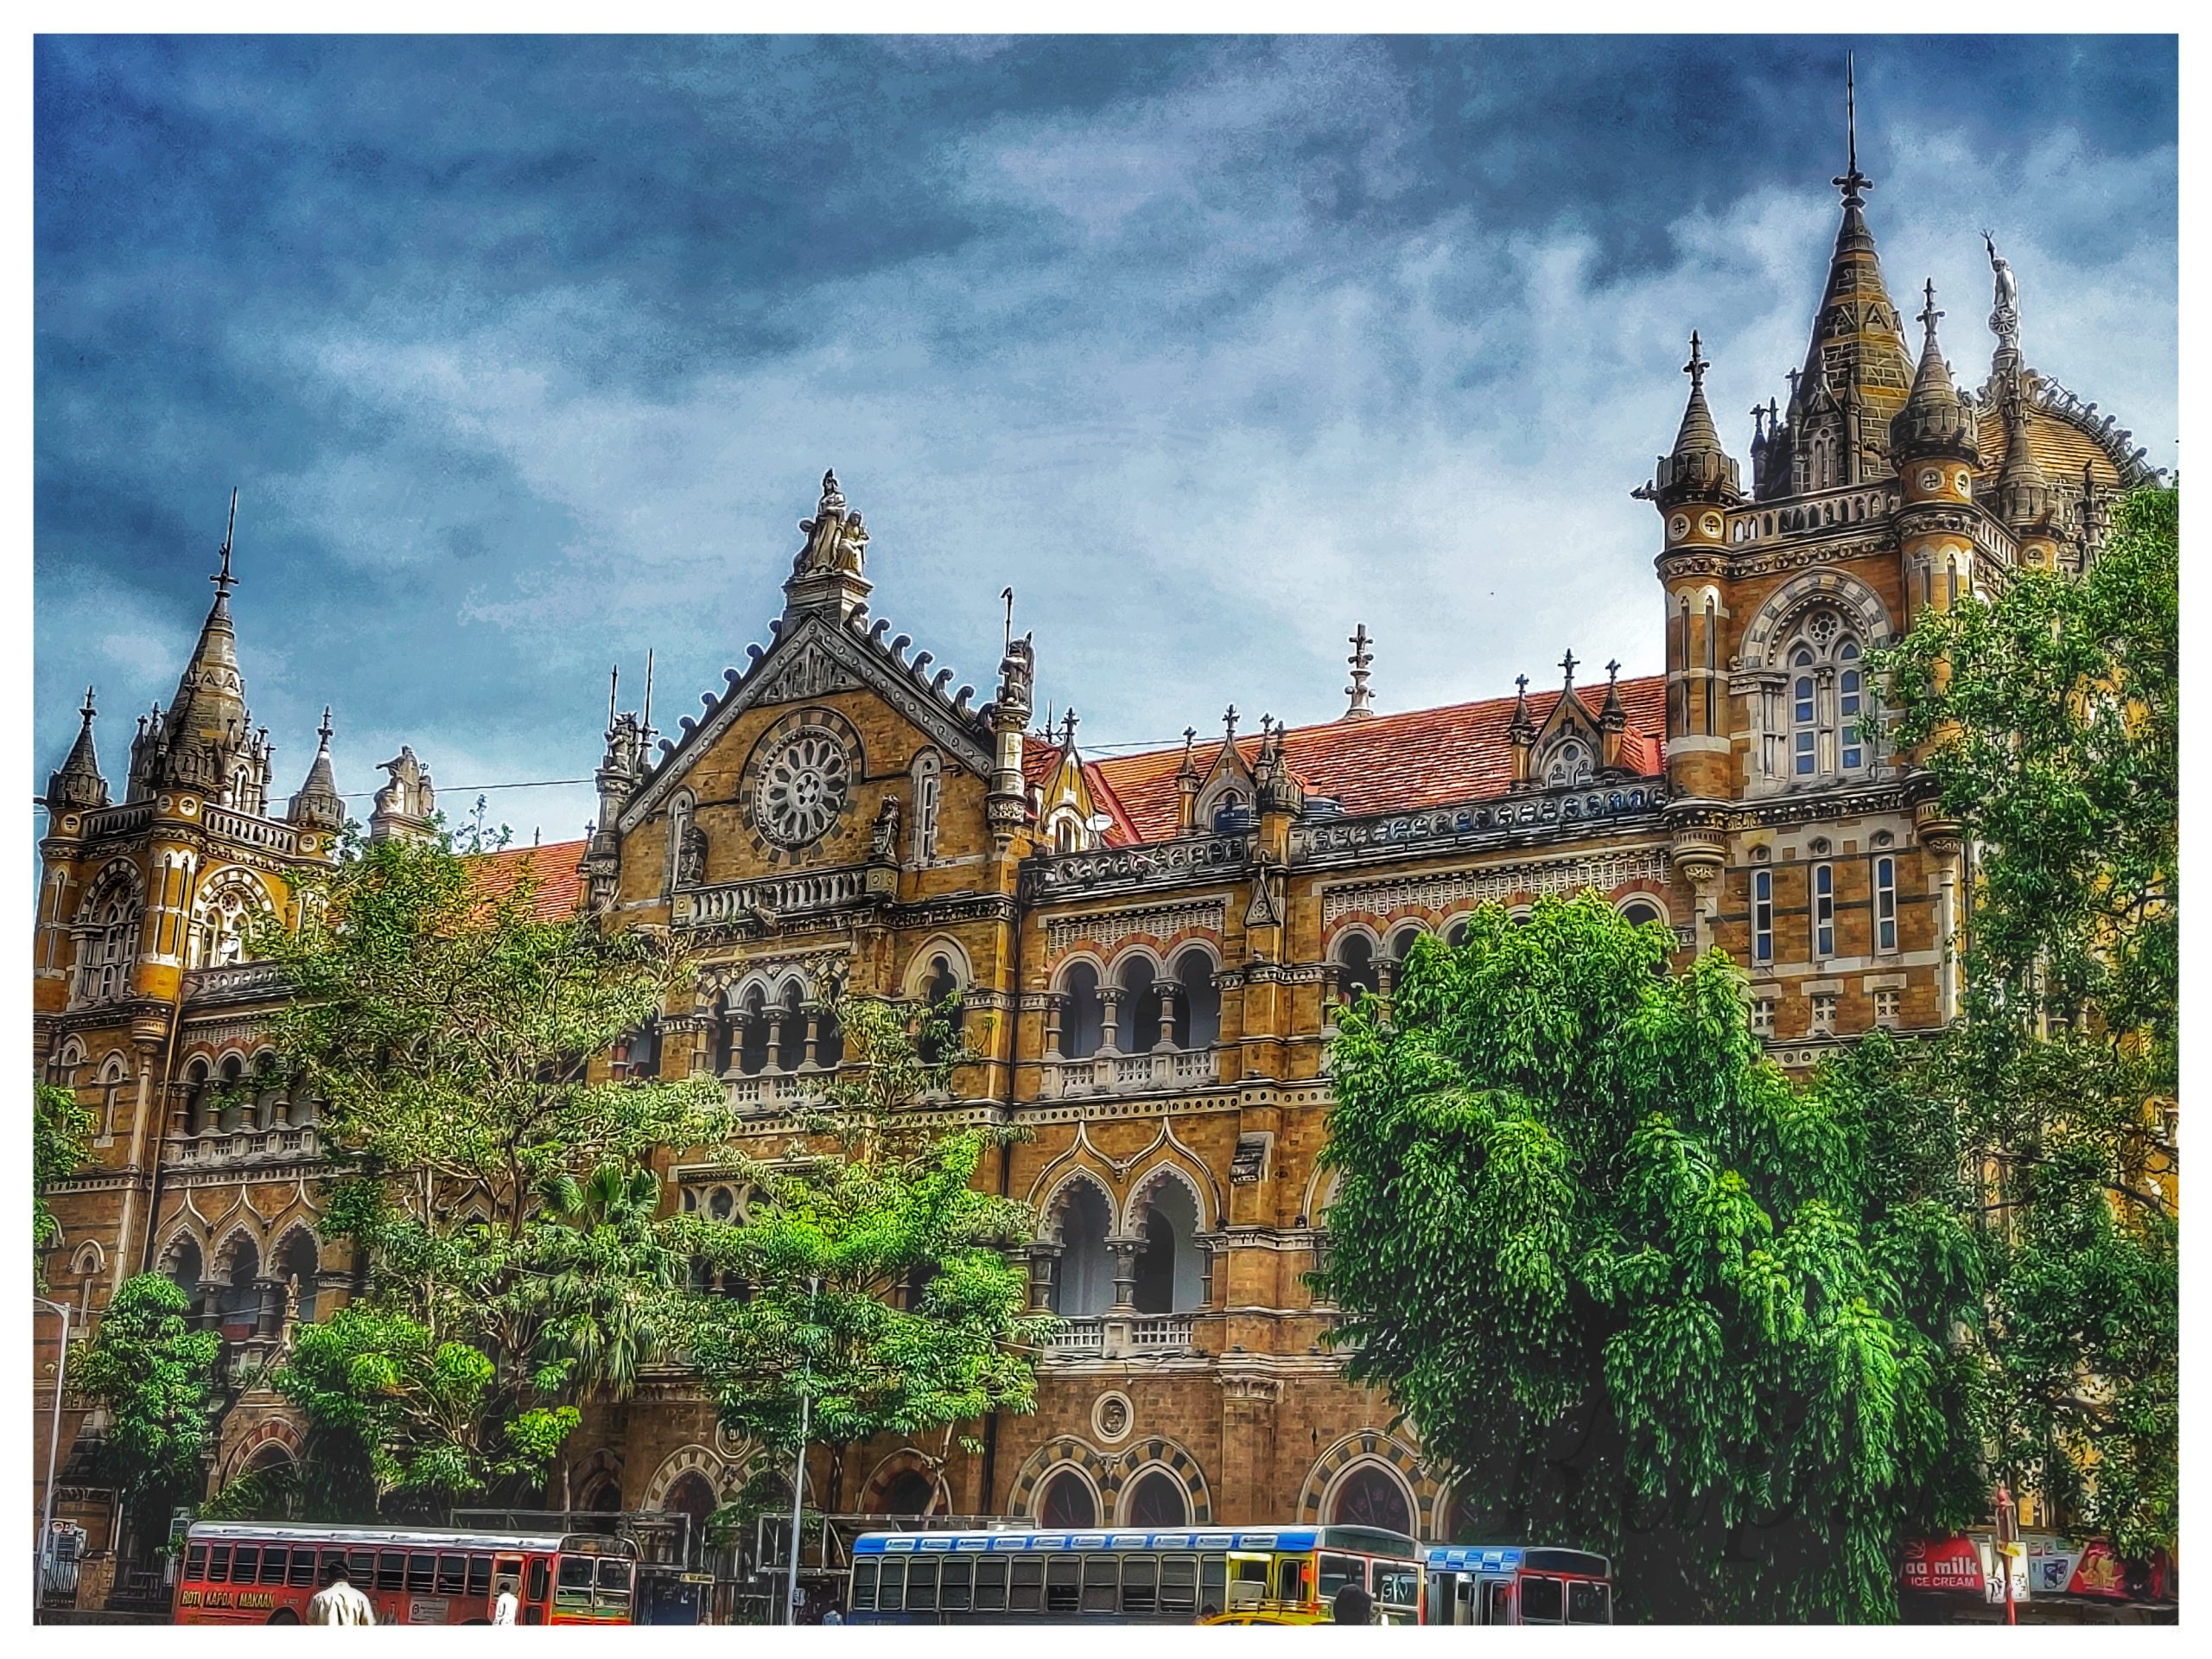 CSMT STATION